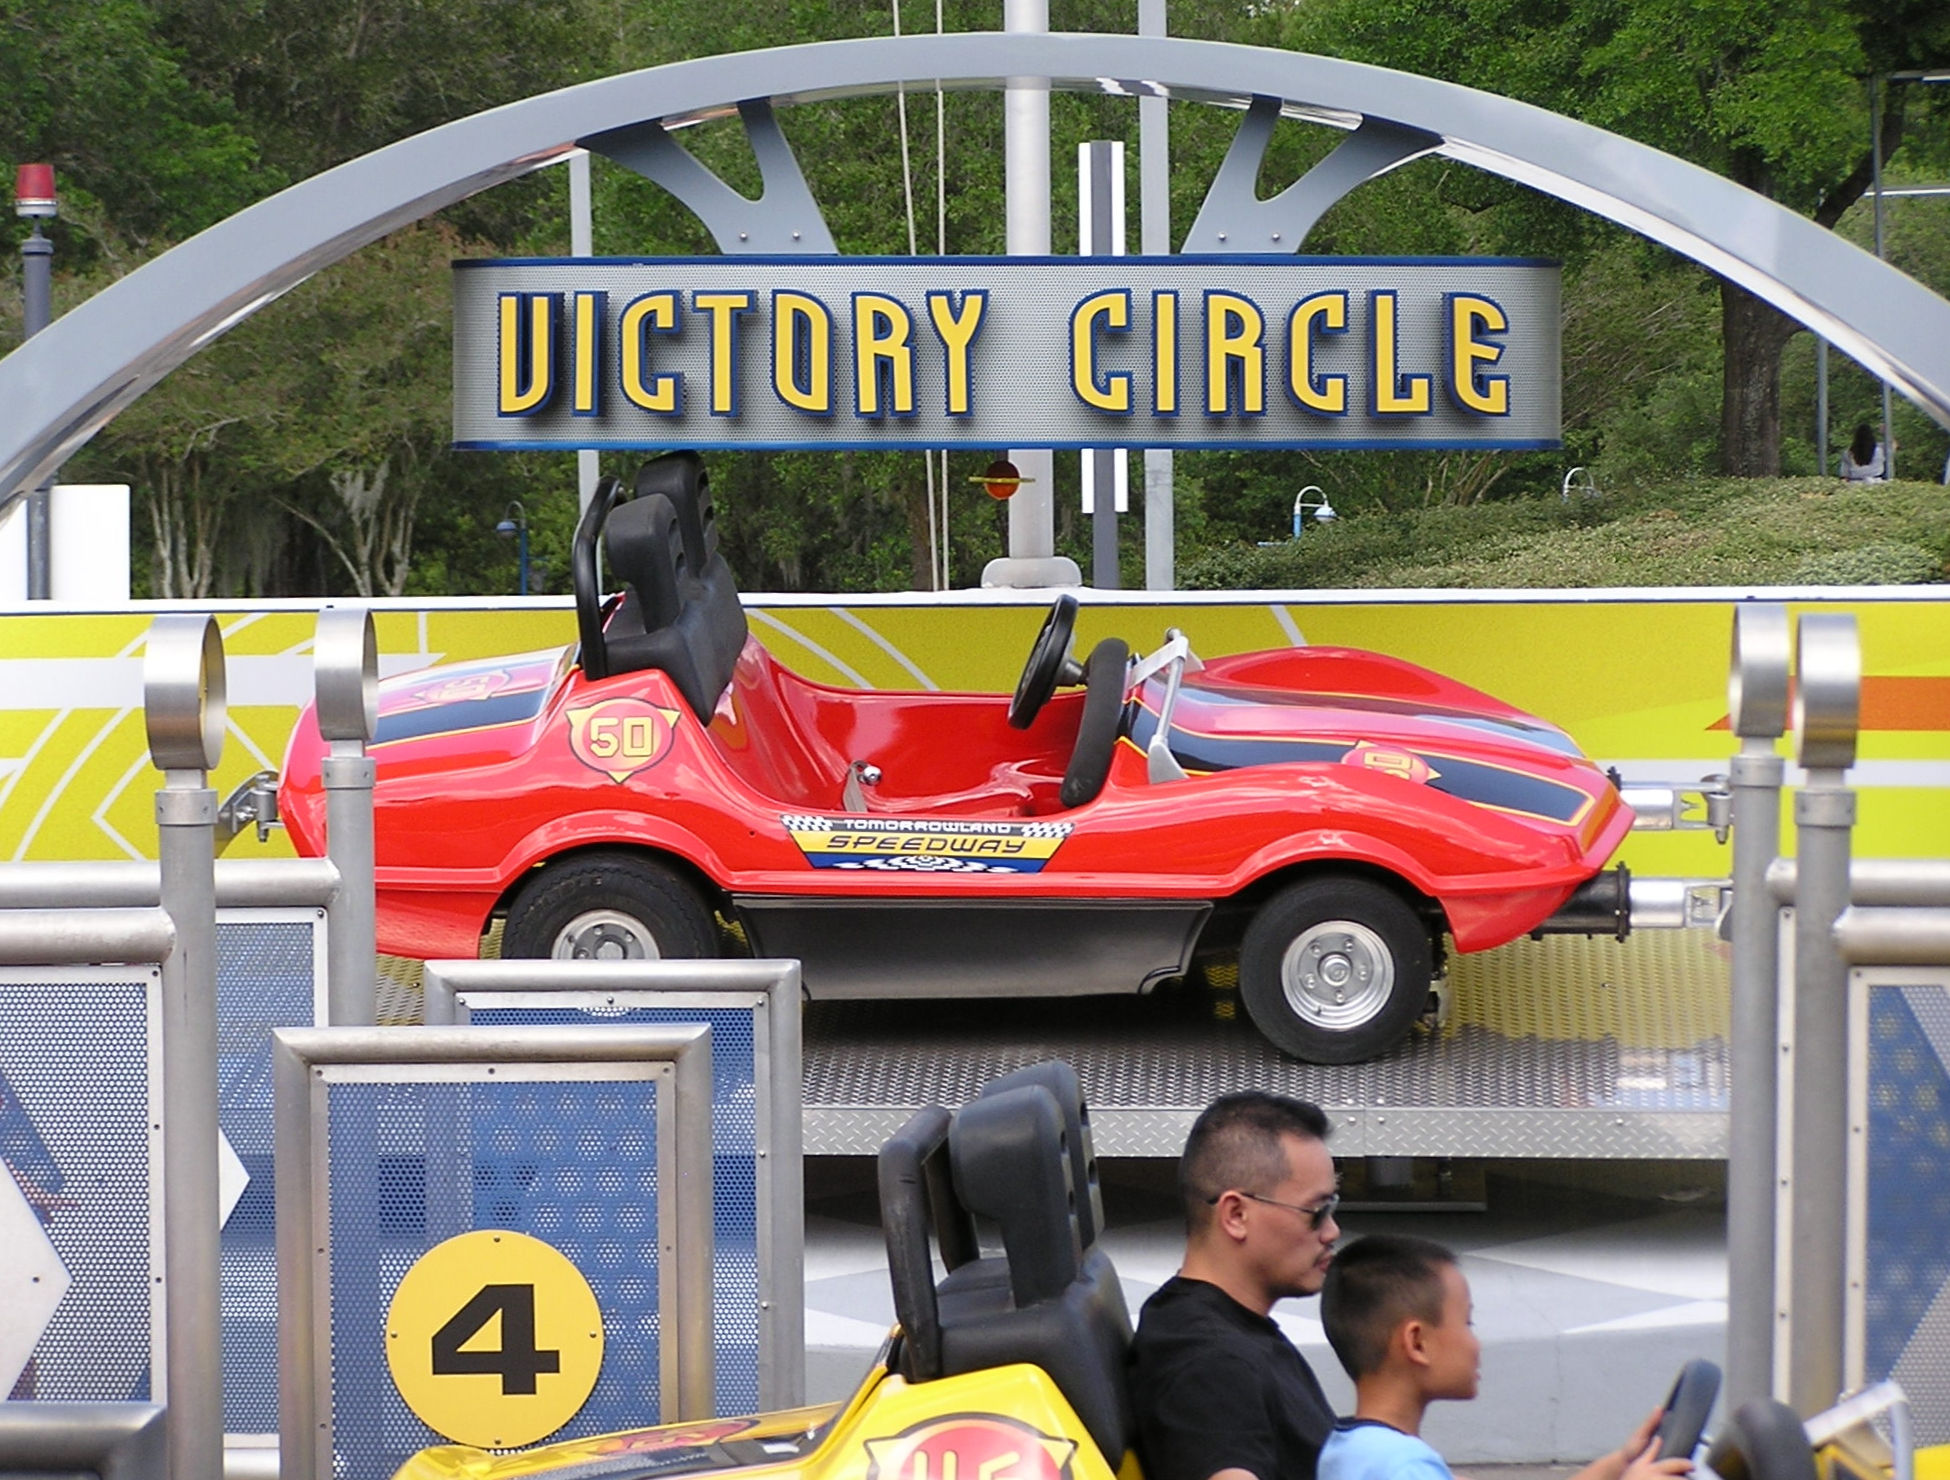 Jud's Disney Picture of the Day: Victory Circle